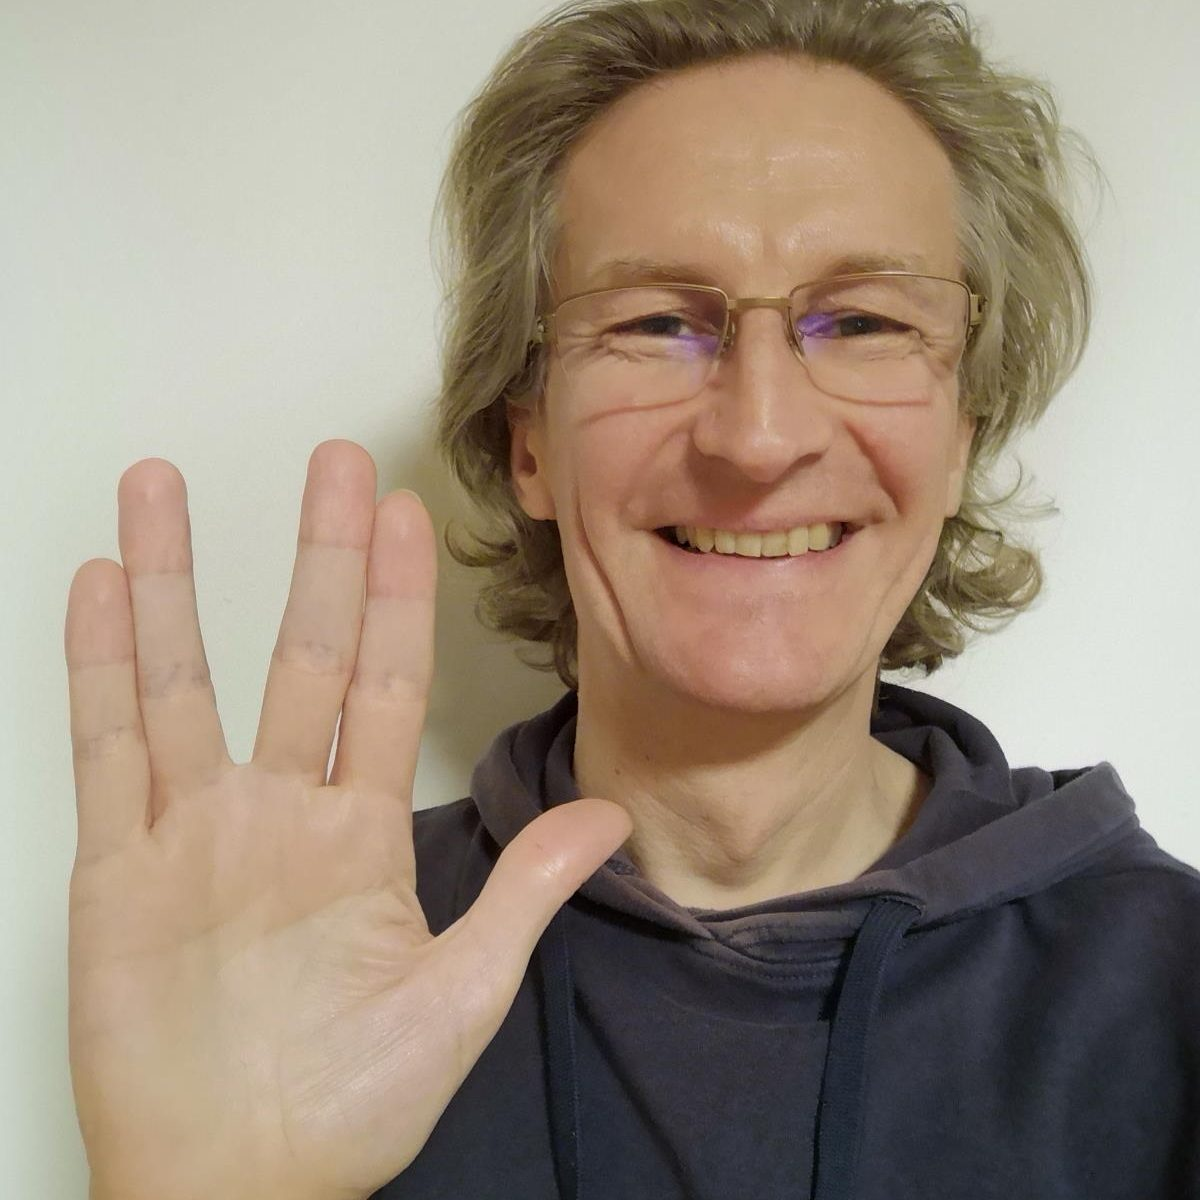 Live long and prosper - Shalom aleichem - Salaam alaykum - peace be upon you - Möge die Macht mit uns allen sein